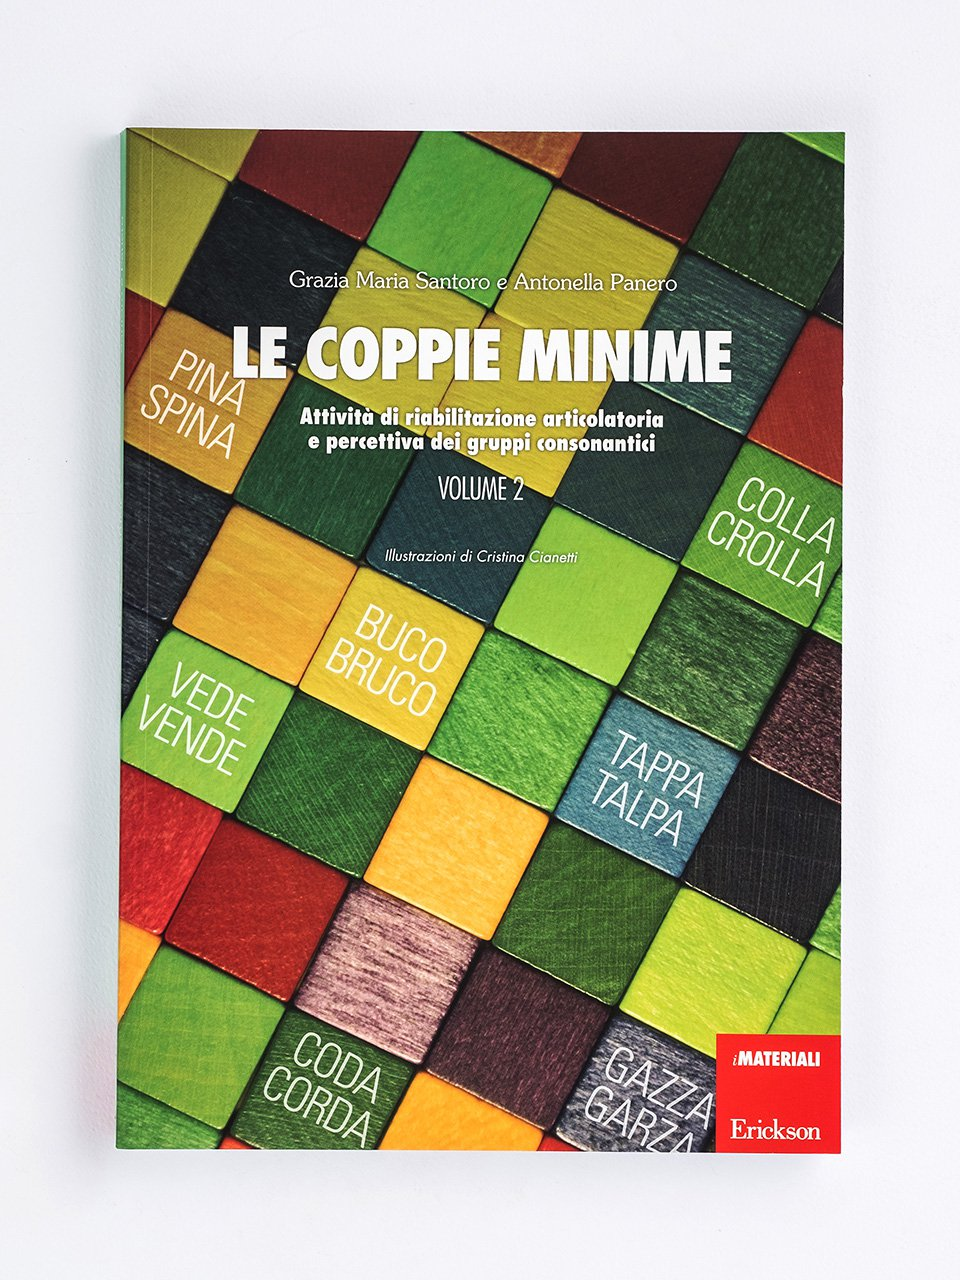 Le coppie minime - Volume 2 - Libri - App e software - Erickson 7